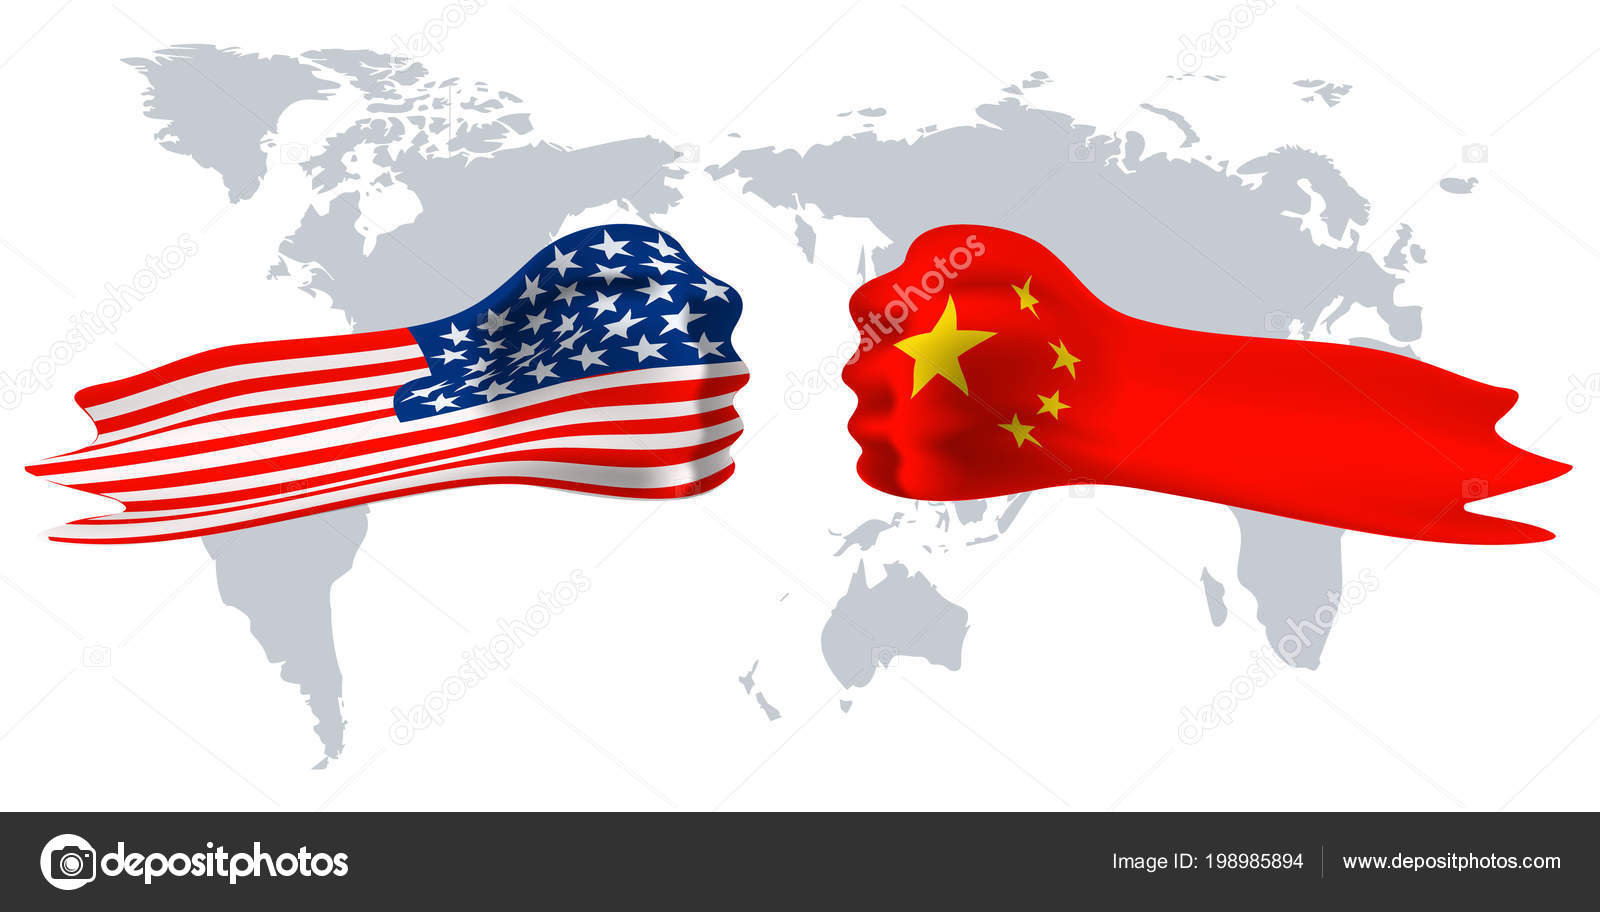 Usa versus china fist flag on world map background stock vector usa versus china fist flag on world map background stock vector gumiabroncs Choice Image